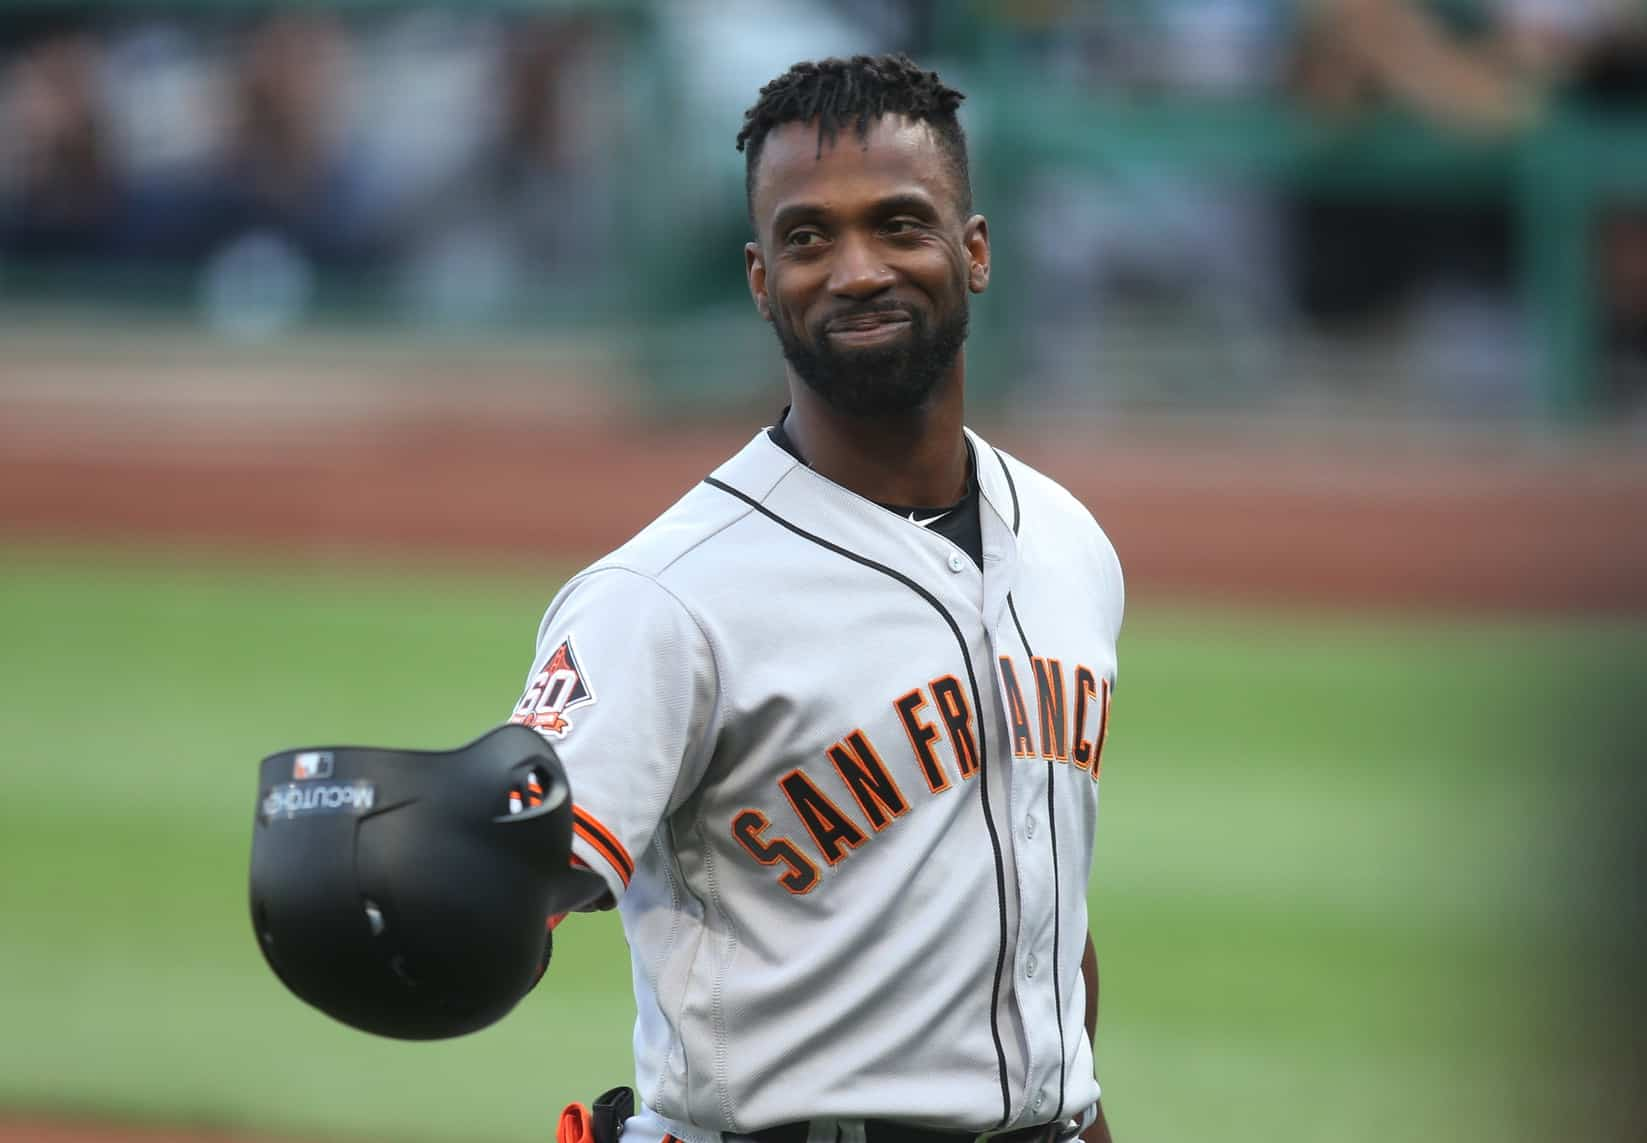 finest selection fa6ca 4b14a Andrew McCutchen reportedly traded to Yankees